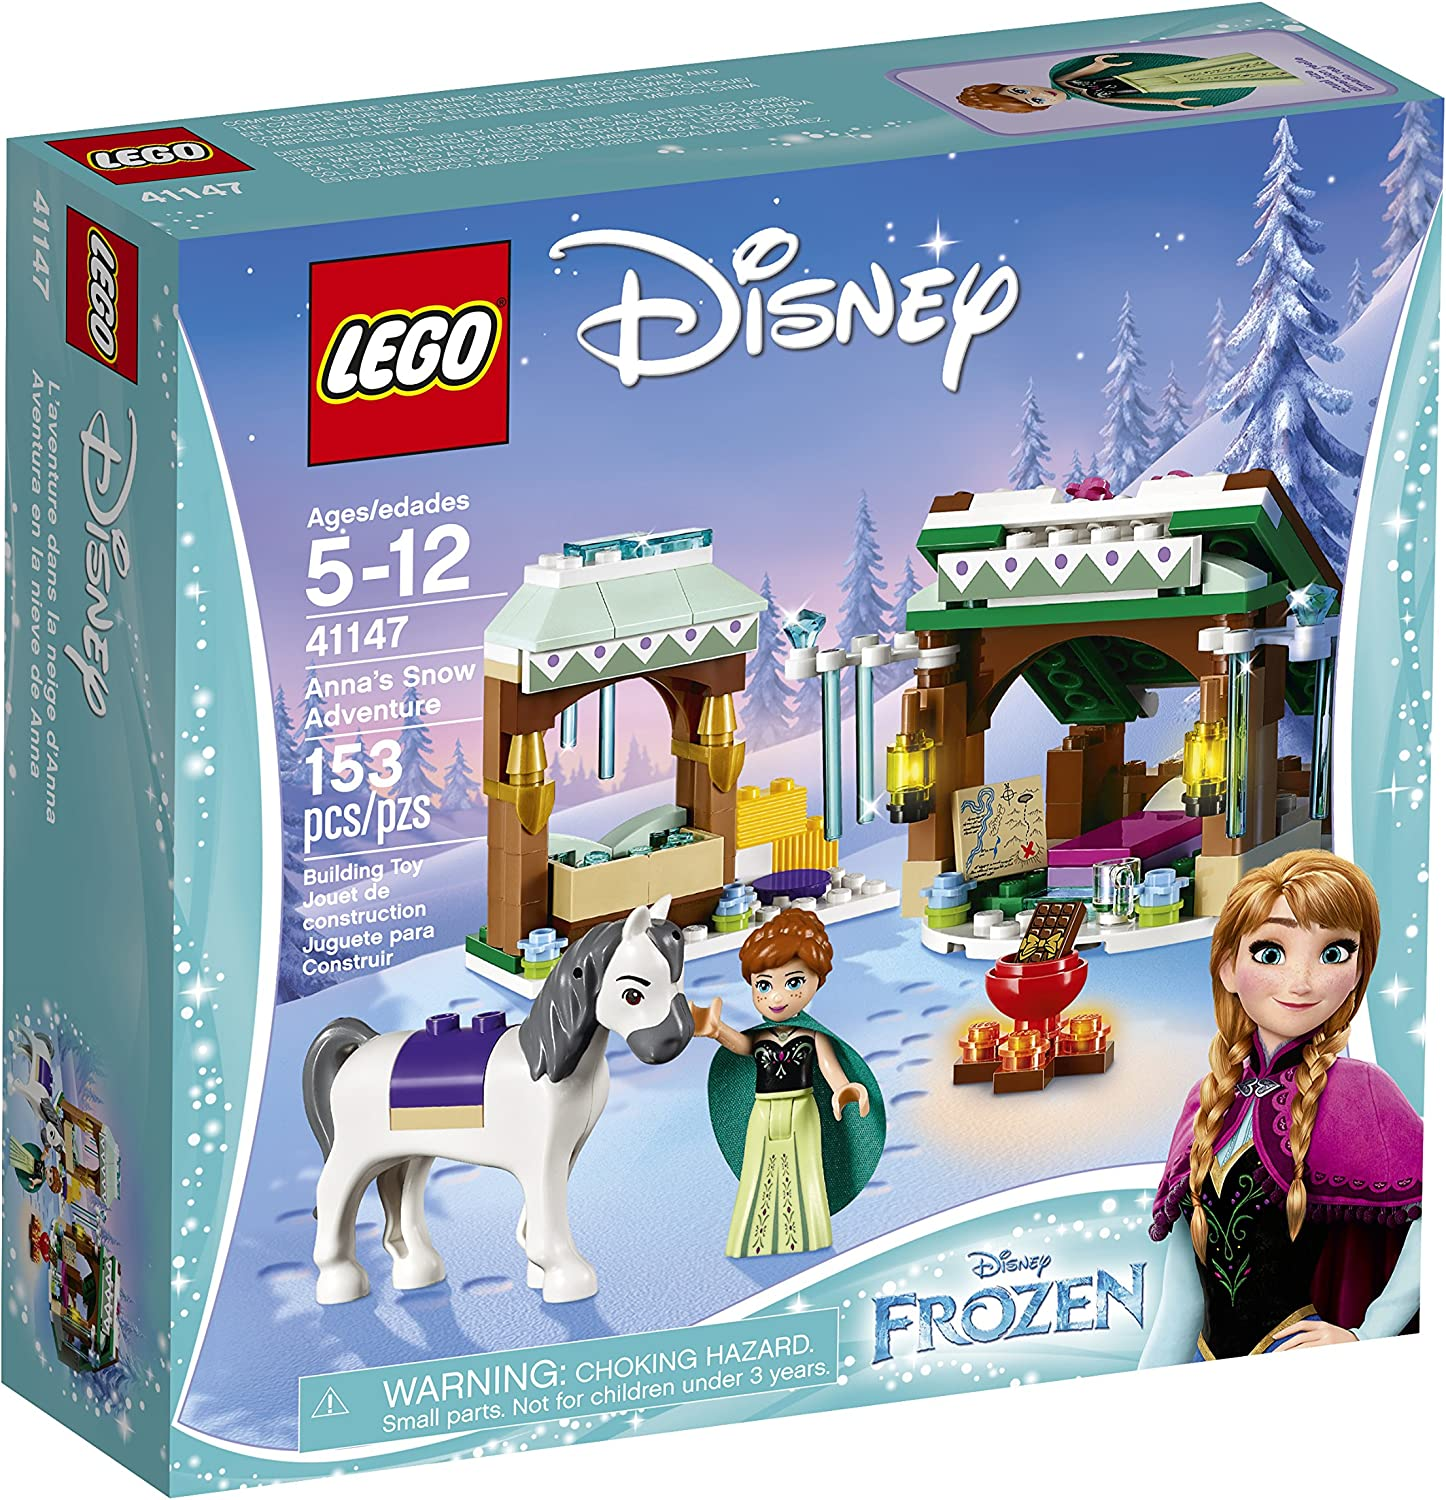 LEGO Disney Frozen Anna's Snow Adventure 41147, Disney Princess Toy